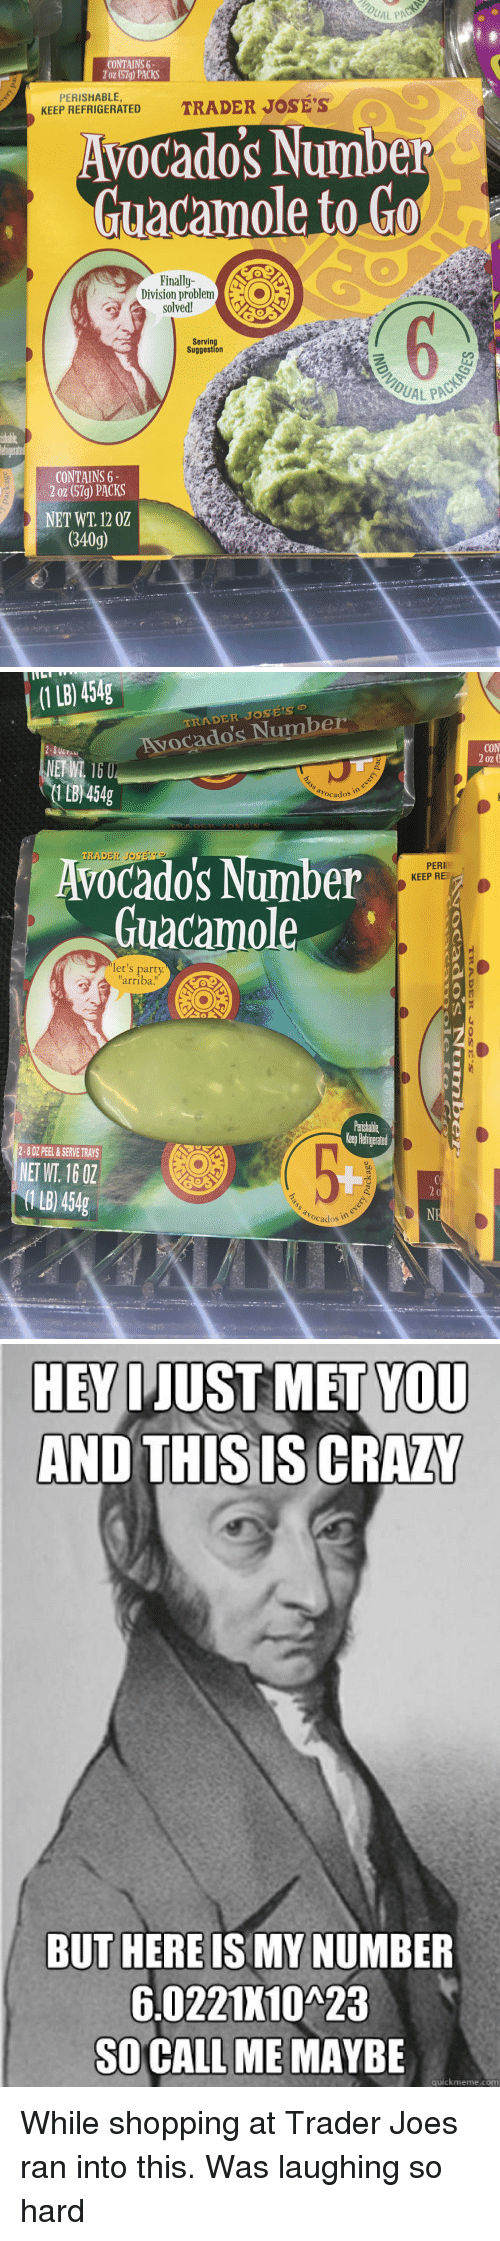 "quickmeme: CONTAINS 6  2 oz (57g) PACKS  PERISHABLE,  KEEP REFRIGERATED  Avocado's Number  Guacamole to Go  Finally  solved!  Serving  Suggestion  UAL PAC  ishable  CONTAINS 6  2 oz (57g) PACKS  NET WT. 12 02  340g)   (1 LB) 454g  To  RADER JOSES  Avocado's Number  CON  0Z  1LB 454g  avocados  Avocado's Number  Guacamole  TRADER JOSE'S  PERI  KEEP RE  let's party  arriba!""  Paishable  erp Retigeated  2-8 OZ PEEL &SERVE TRAYS  NET WT. 16 0Z  1 B) 454g  b0  Ocados   HEV IJUST MET YOU  AND THIS IS CRAZ  BUT HERE IS MY NUMBER  6.0221K10A23  SO CALL ME MAYBE  quickmeme.com While shopping at Trader Joes ran into this. Was laughing so hard"